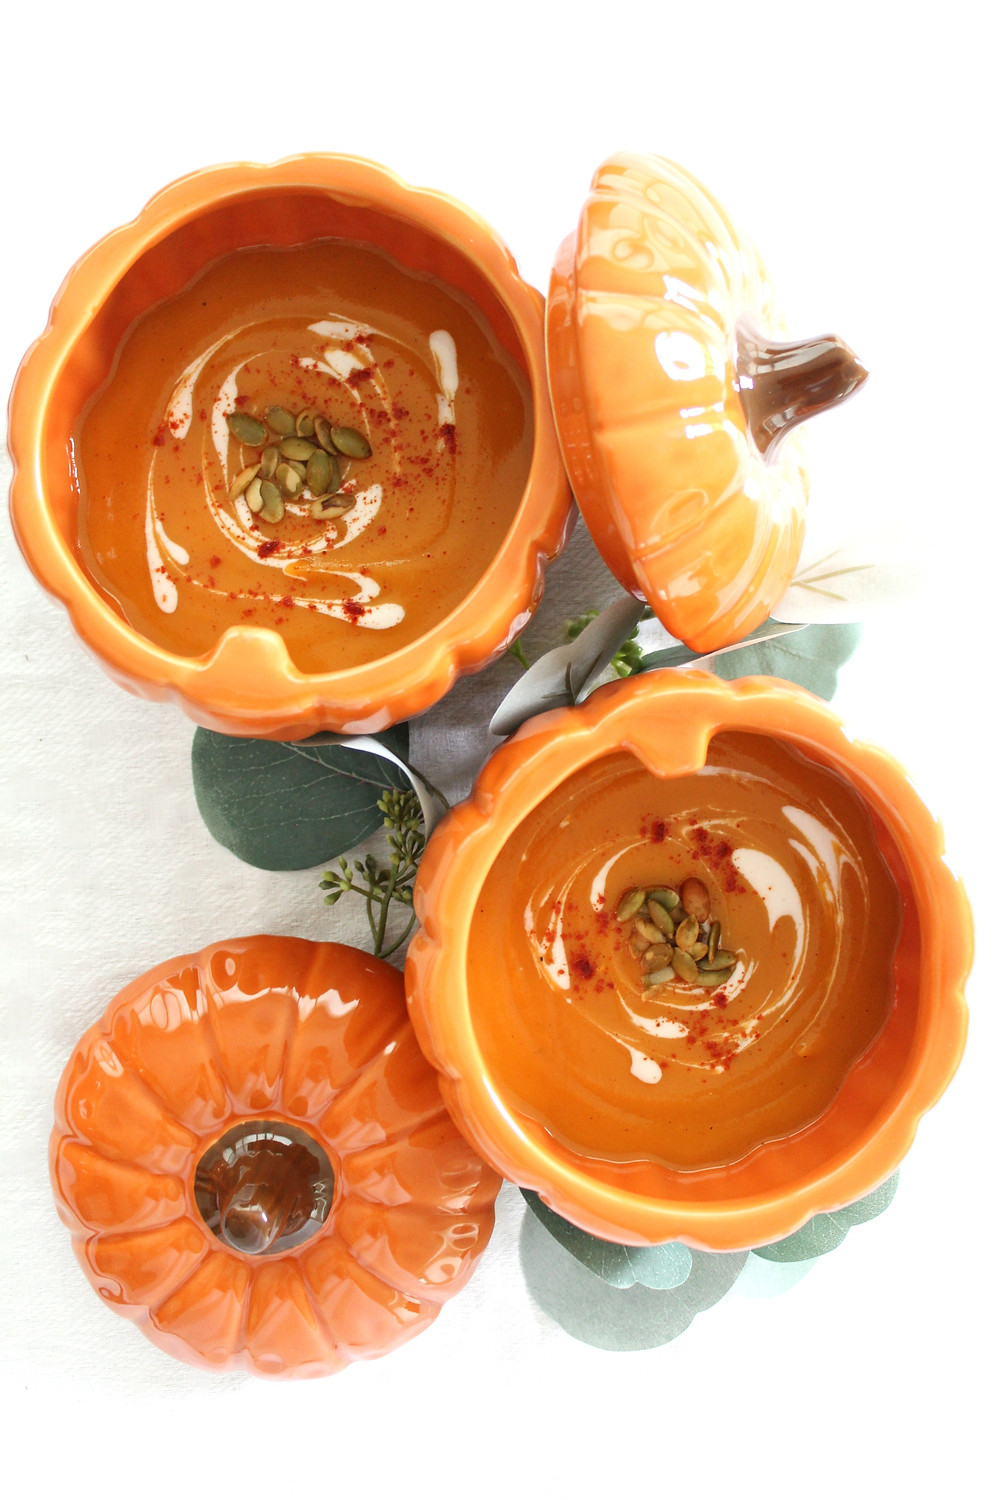 A delicious fall soup made with yams, cream, paprika and toasted sunflower seeds. Curl up with this delicious autumnal soup. The recipe is quick, easy and delicious and is perfect for meal prepping. Try this autumnal soup recipe today! #fallsoup #deliciousfallrecipe #fallrecipe